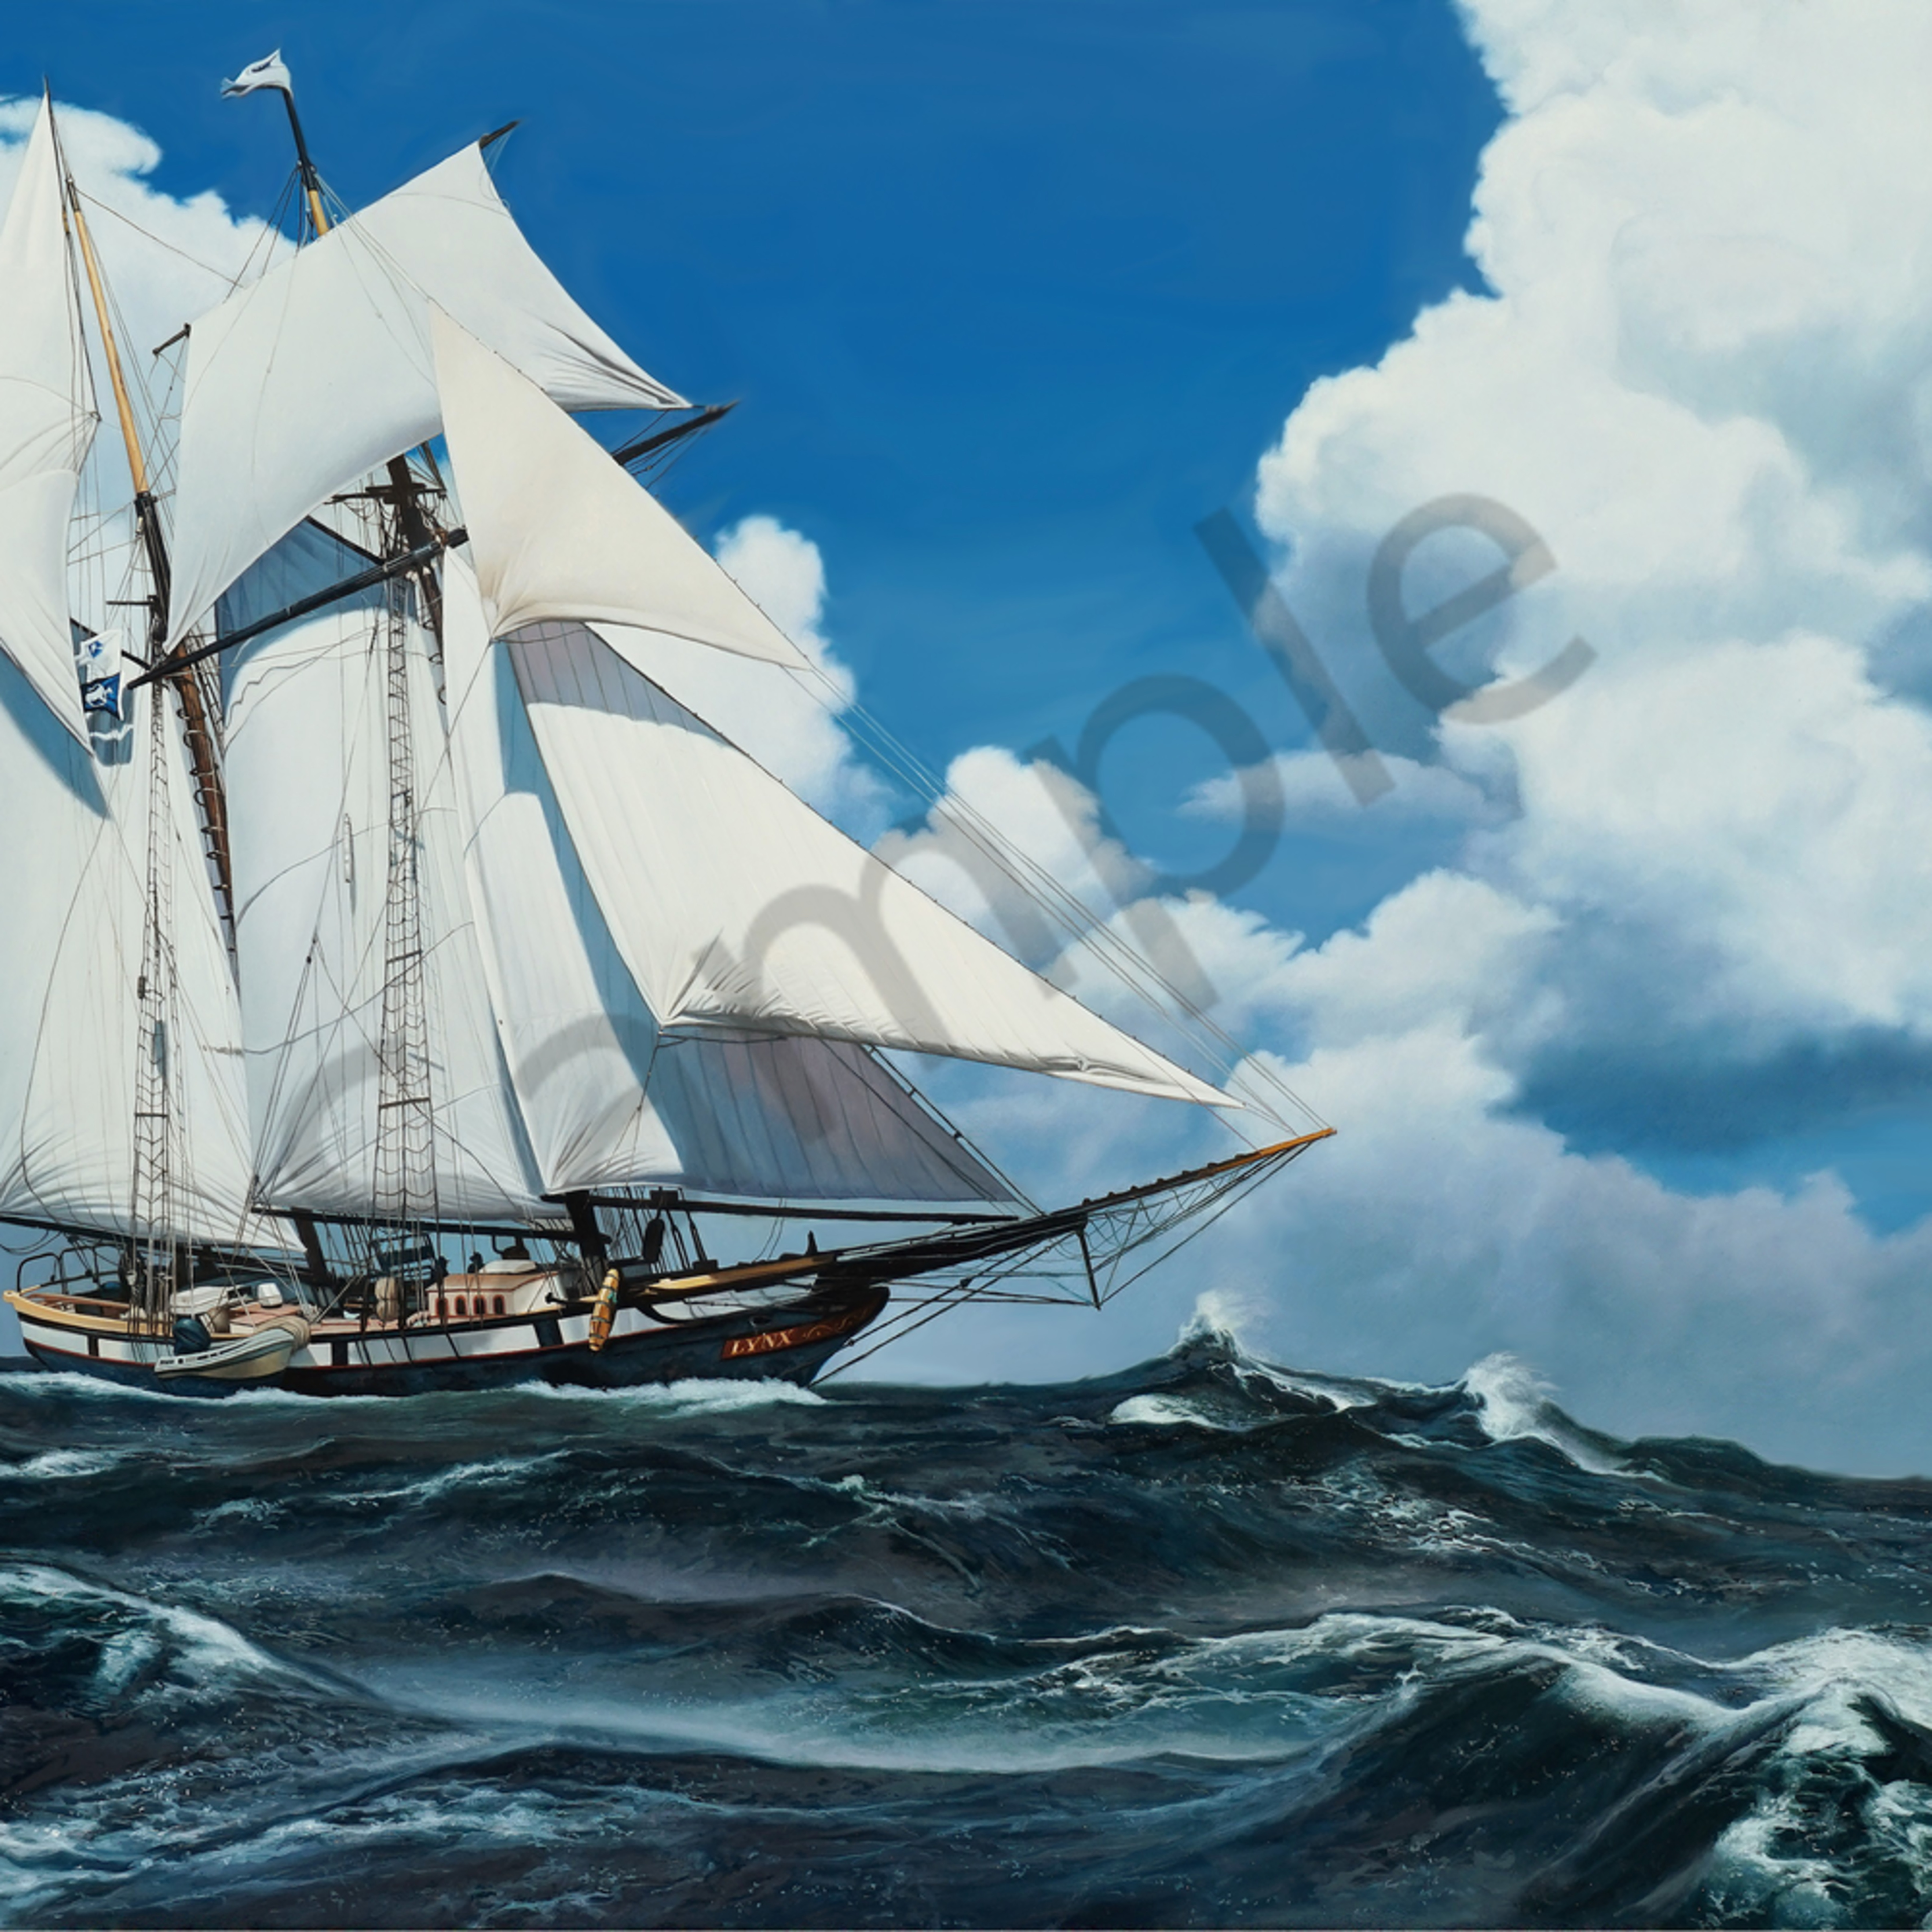 Schooner racing the storm 24x36 print file zjyqqv